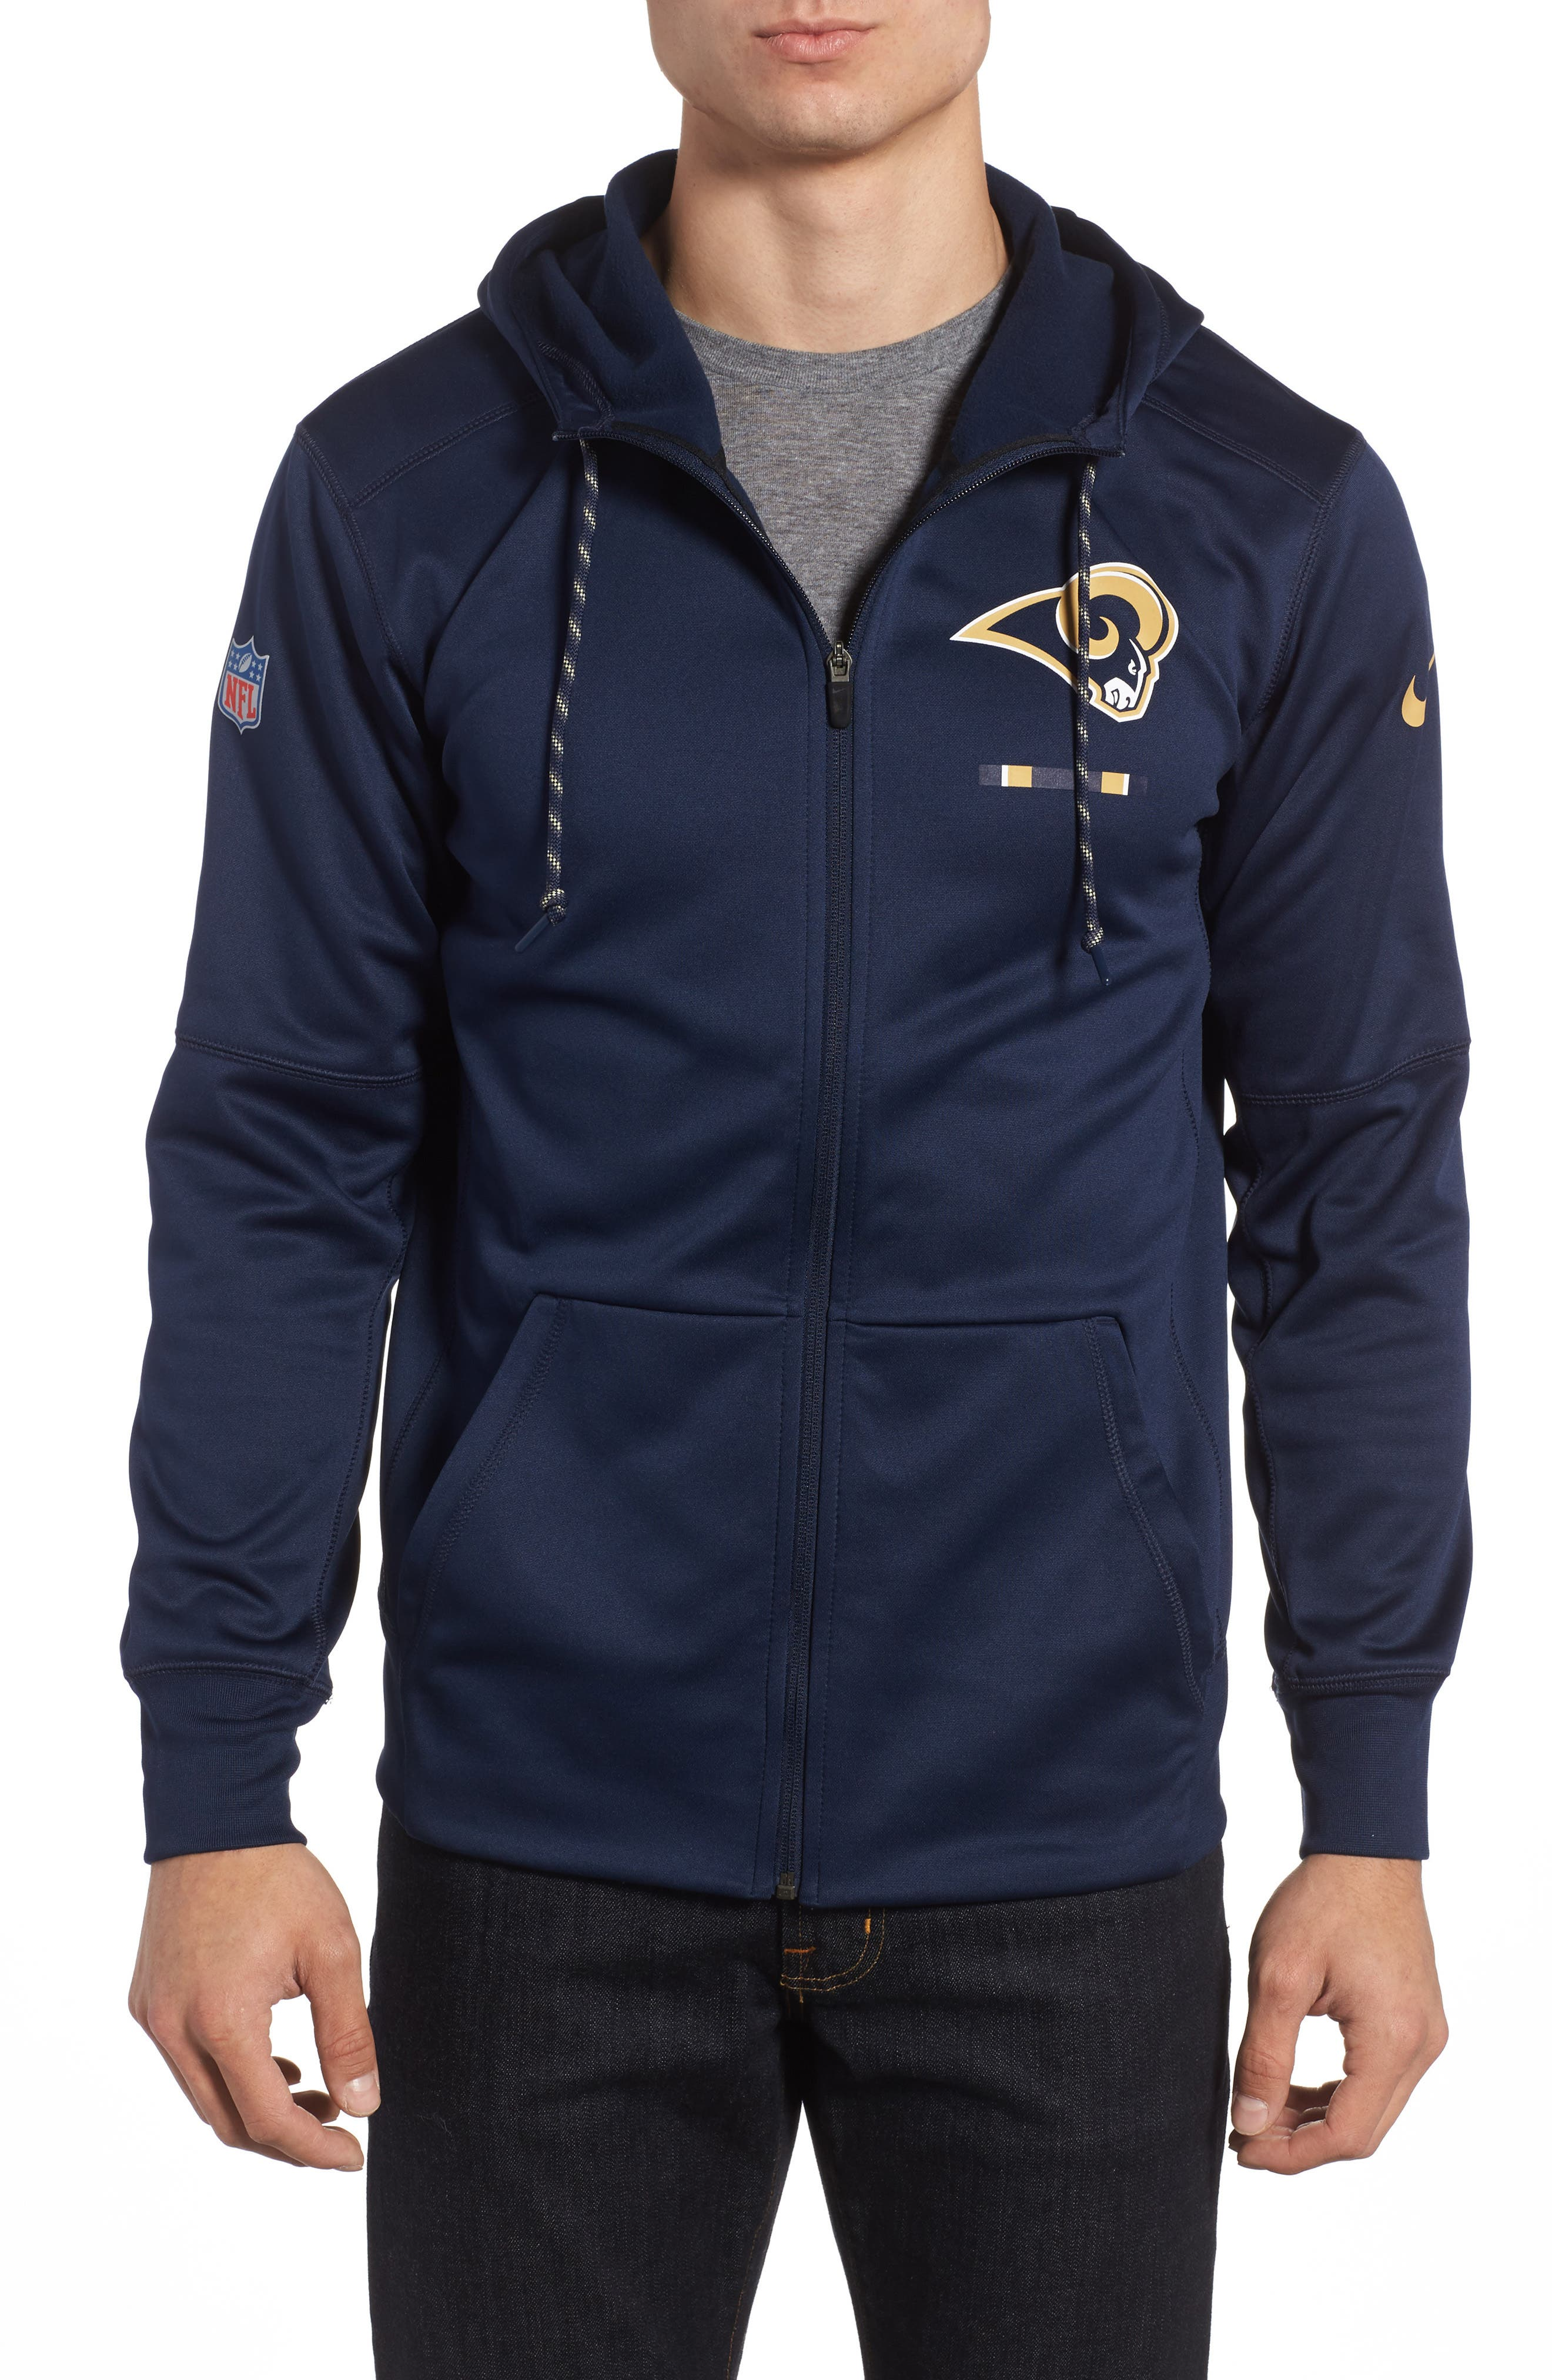 Therma-FIT NFL Graphic Zip Hoodie,                             Main thumbnail 5, color,